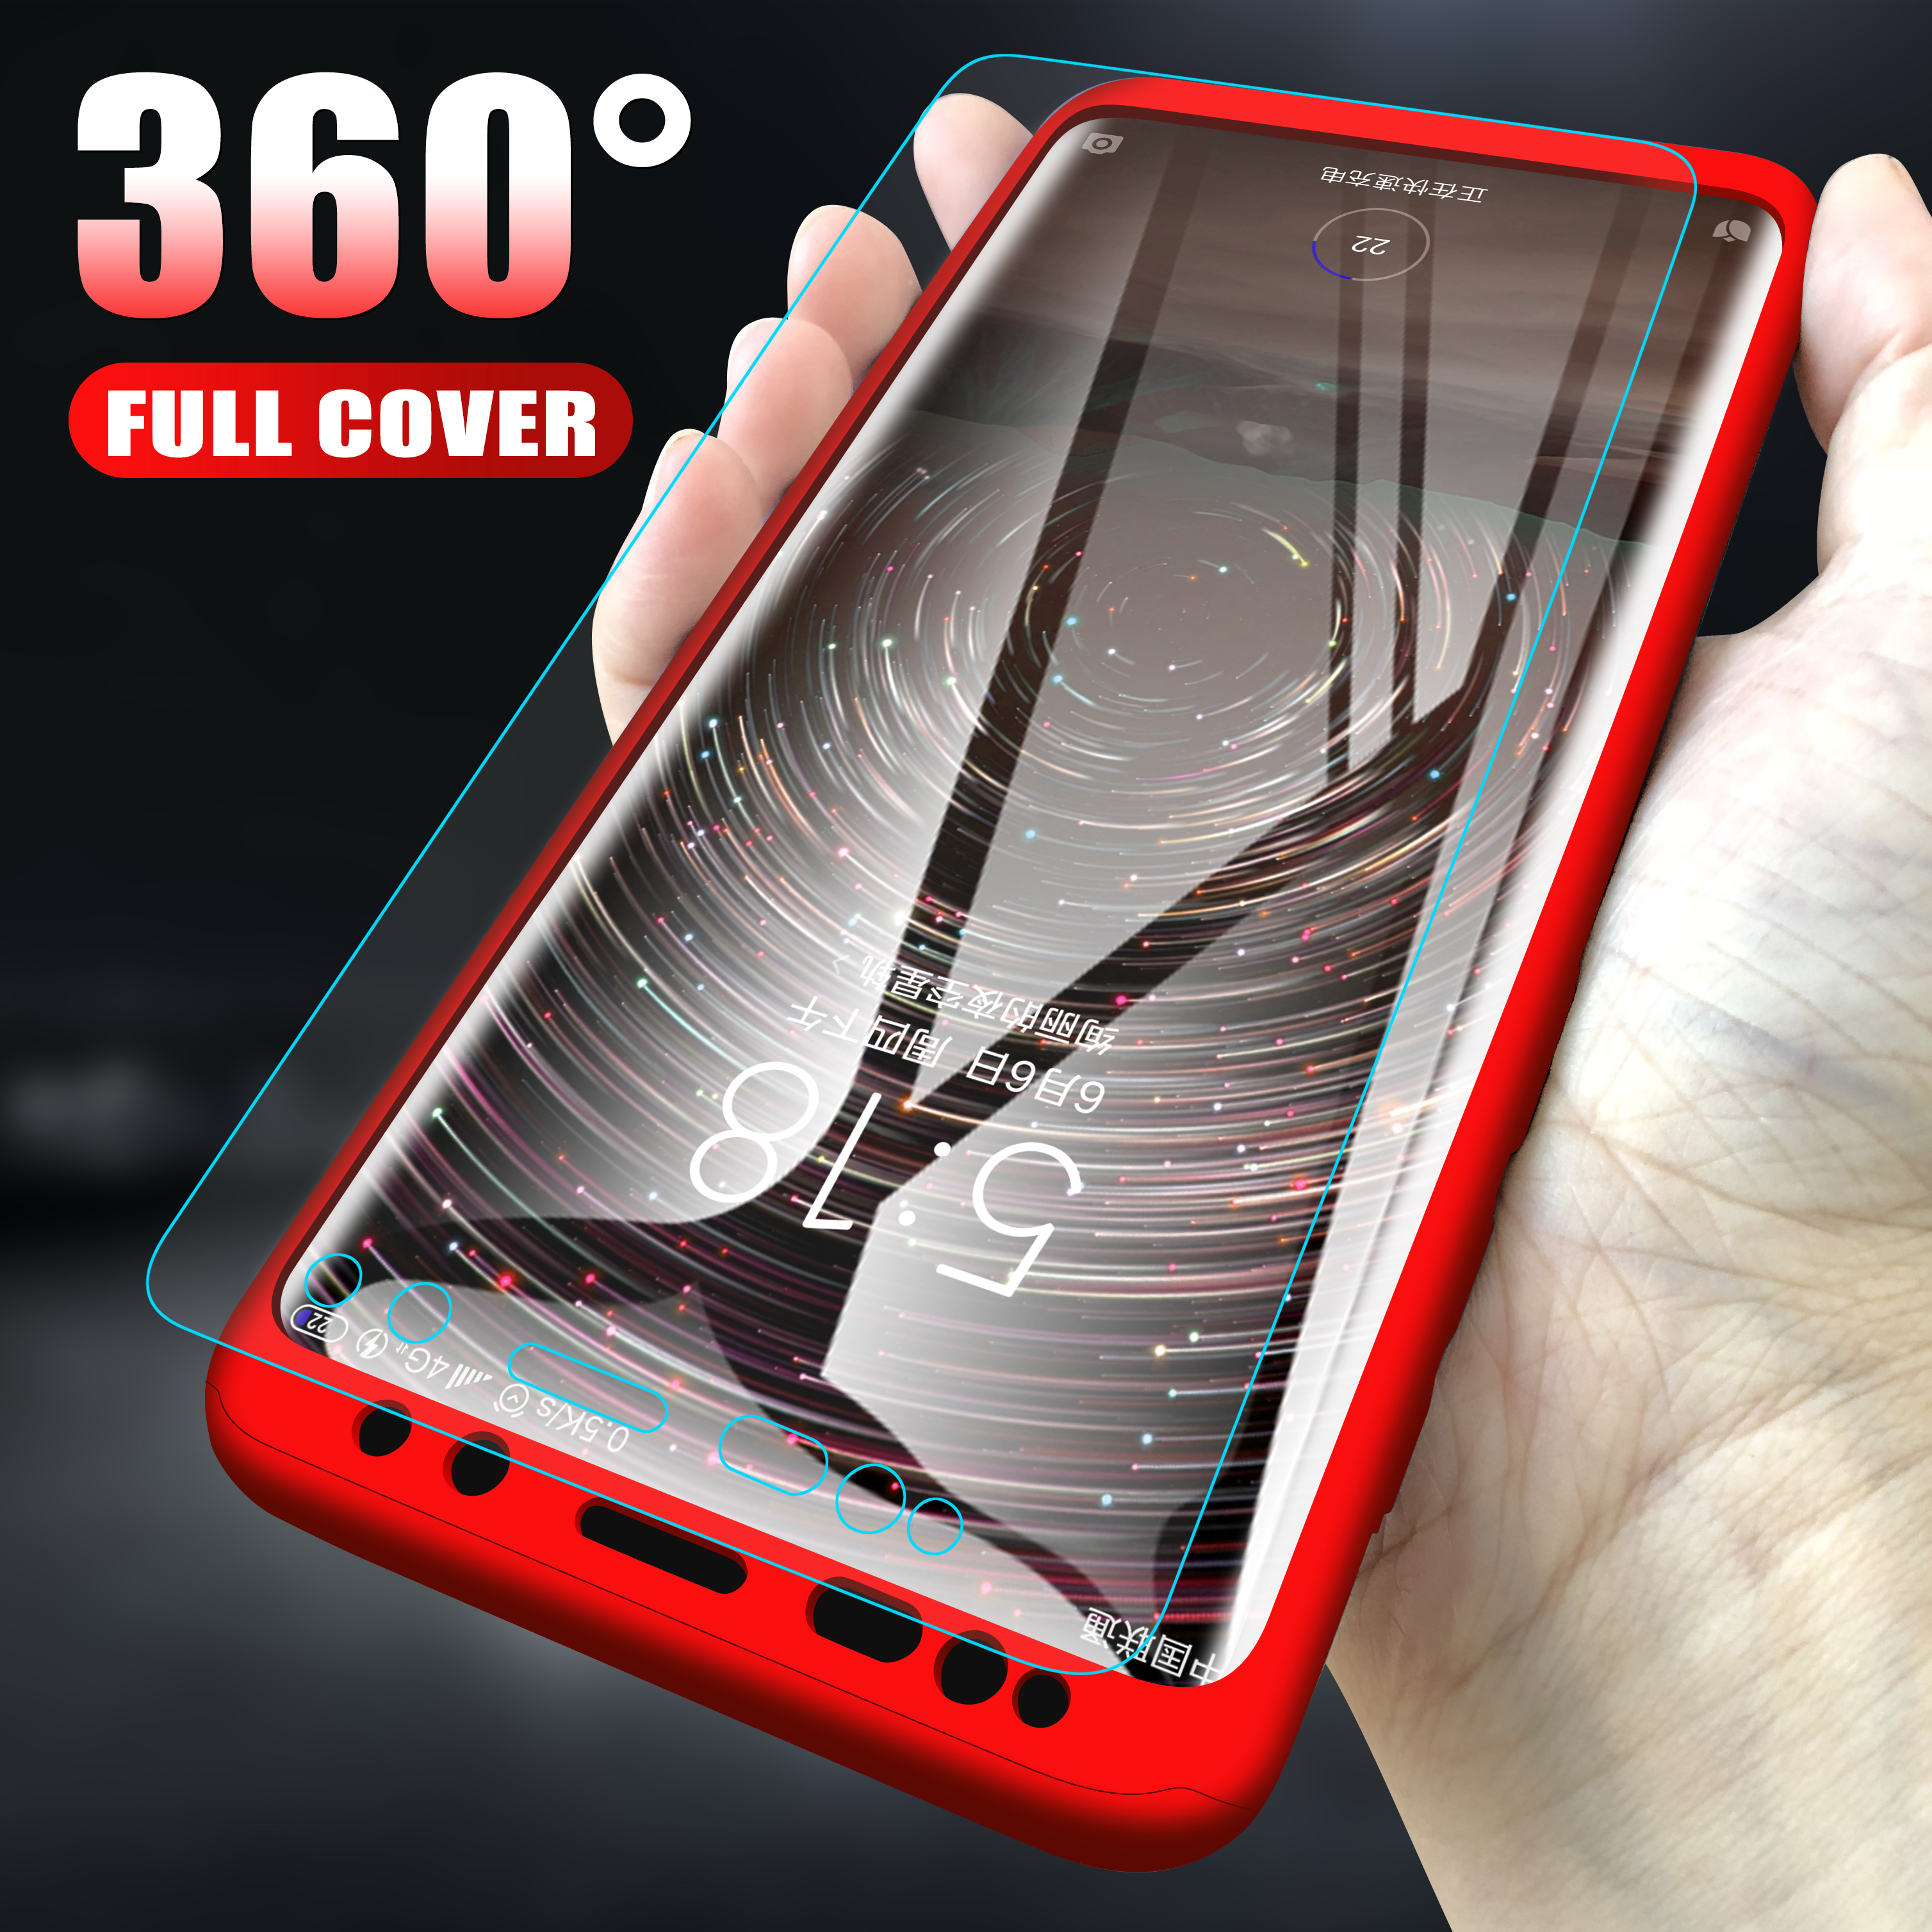 360 Full-Cover Phone-Case Protective Xiaomi Redmi 4x5-Plus No 5A For 7A 6A 4A With Glass